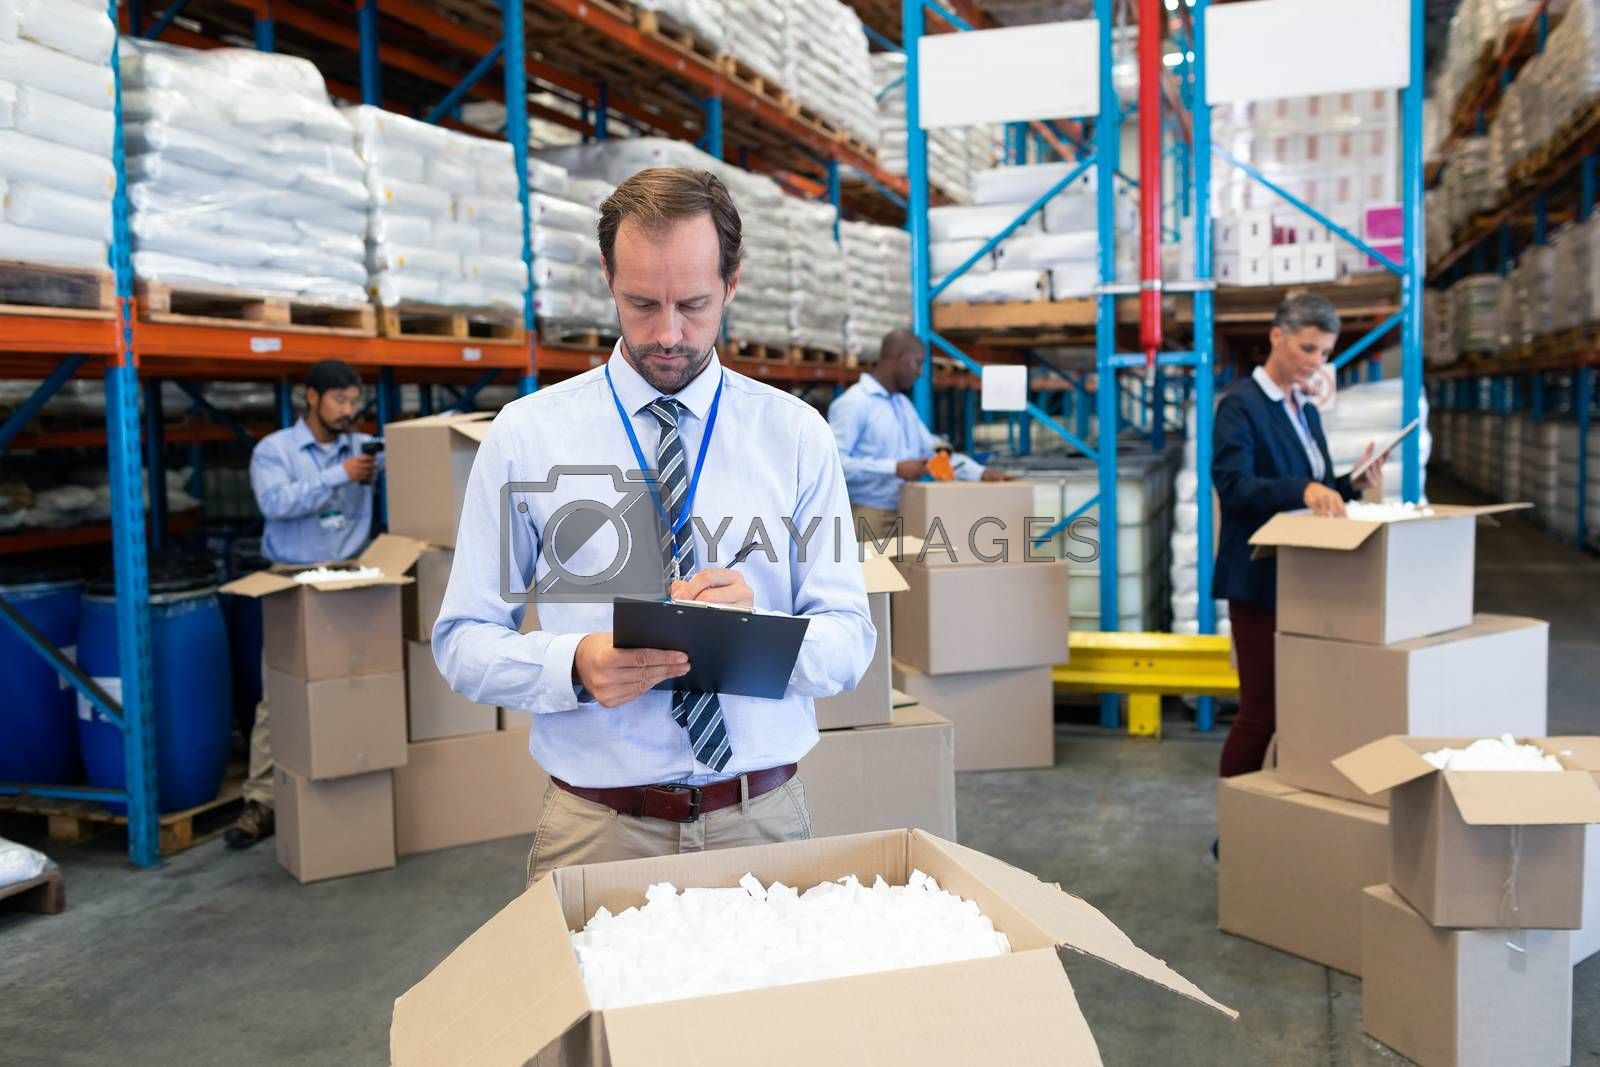 Front view of handsome mature Caucasian male supervisor writing on clipboard in warehouse. Diverse workers checking stock in cardboard boxes behind supervisor. This is a freight transportation and distribution warehouse. Industrial and industrial workers concept